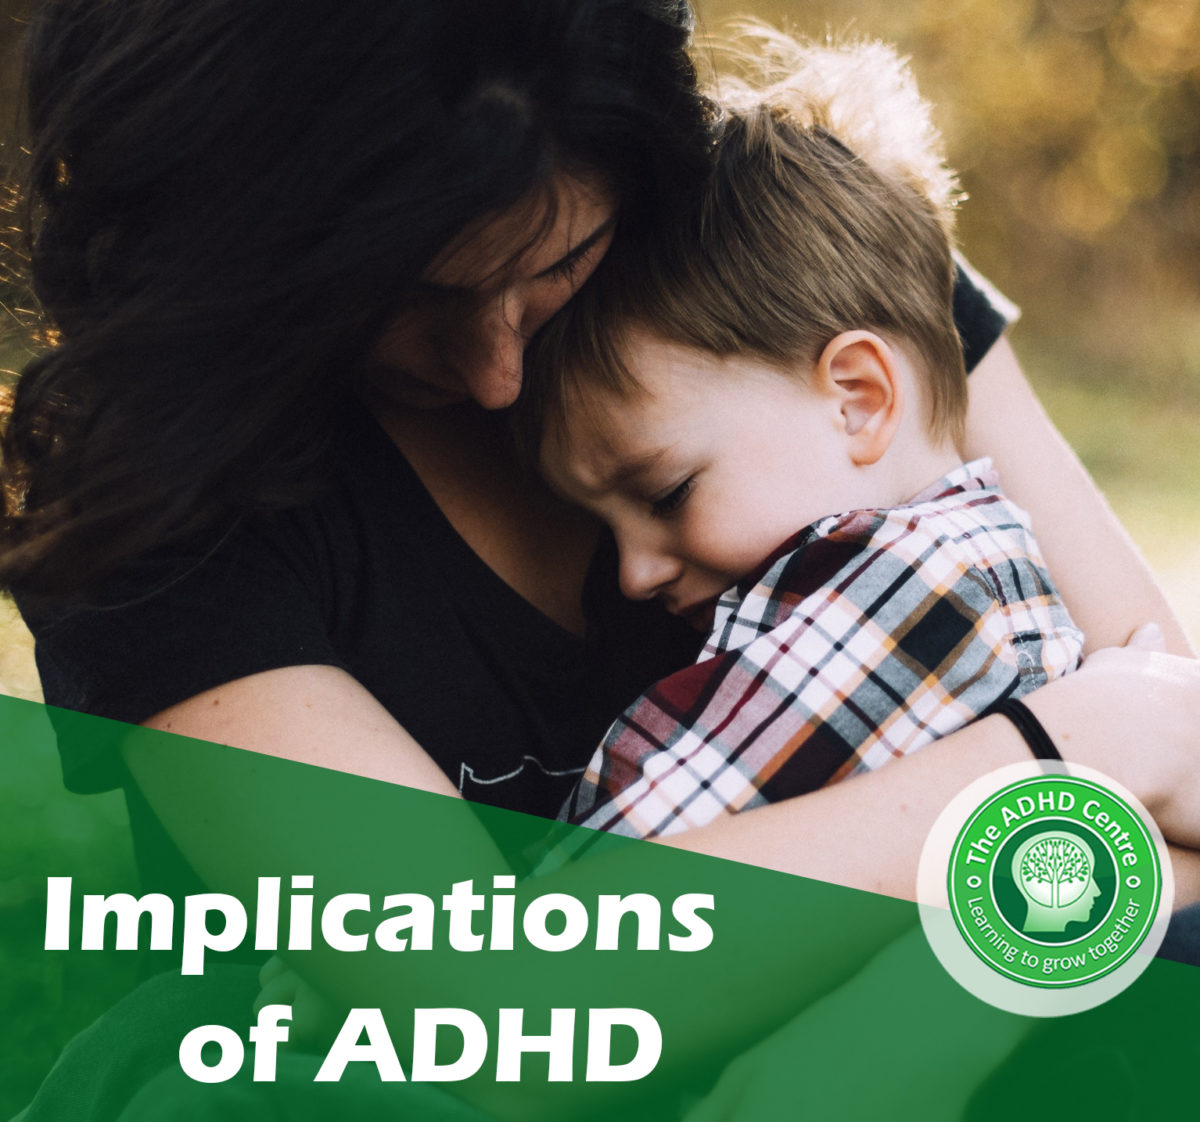 implications-of-adhd-the-adhd-centre-1200x1122.jpg